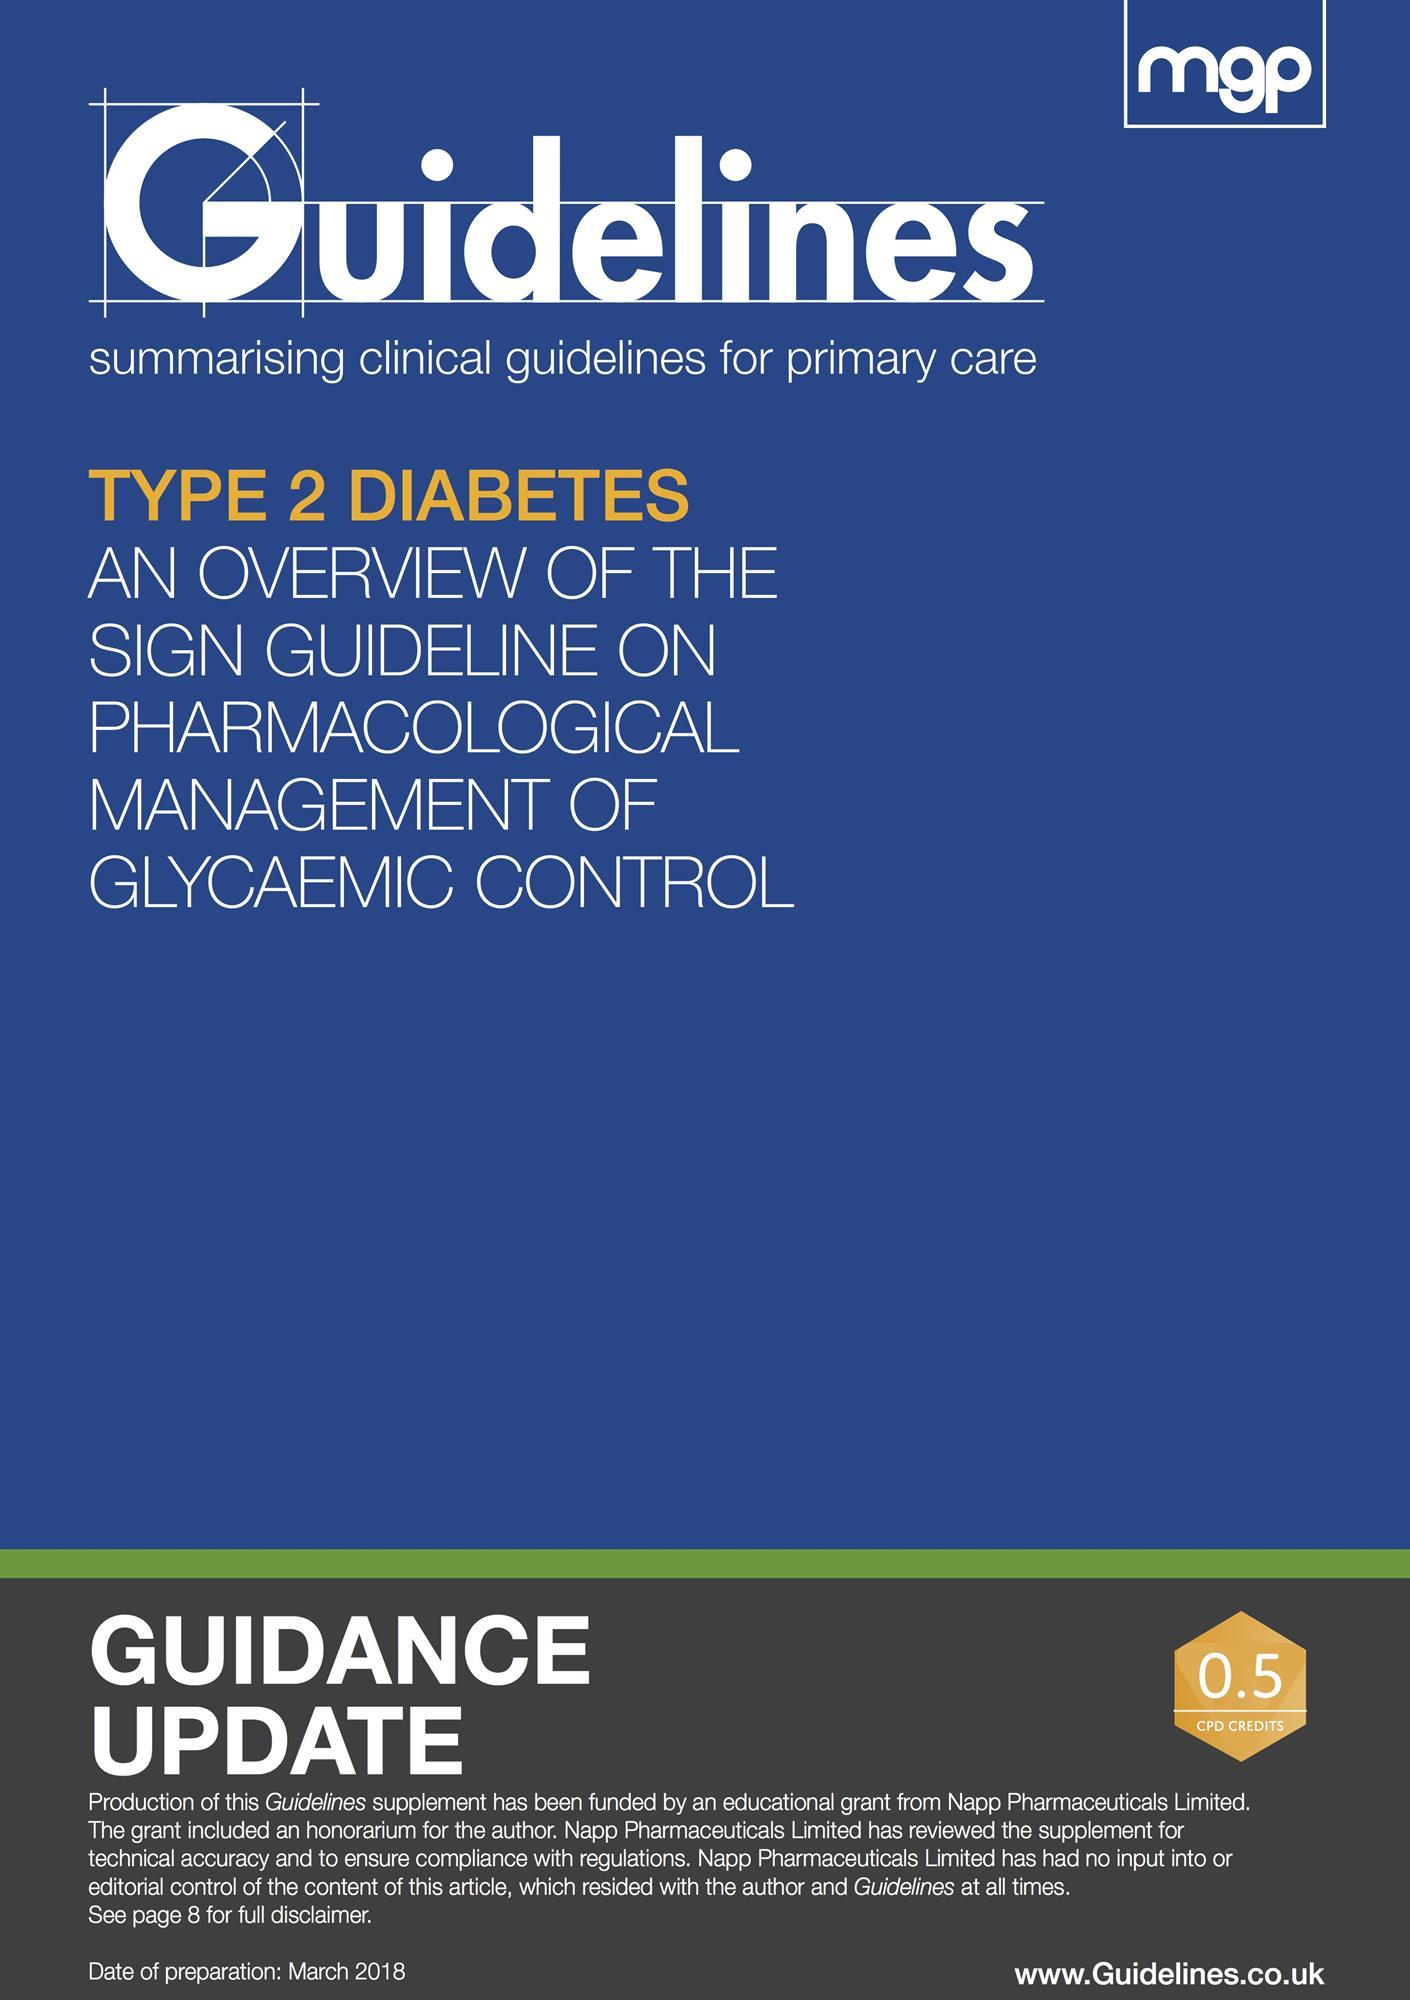 Type 2 diabetes: an overview of the SIGN guideline on